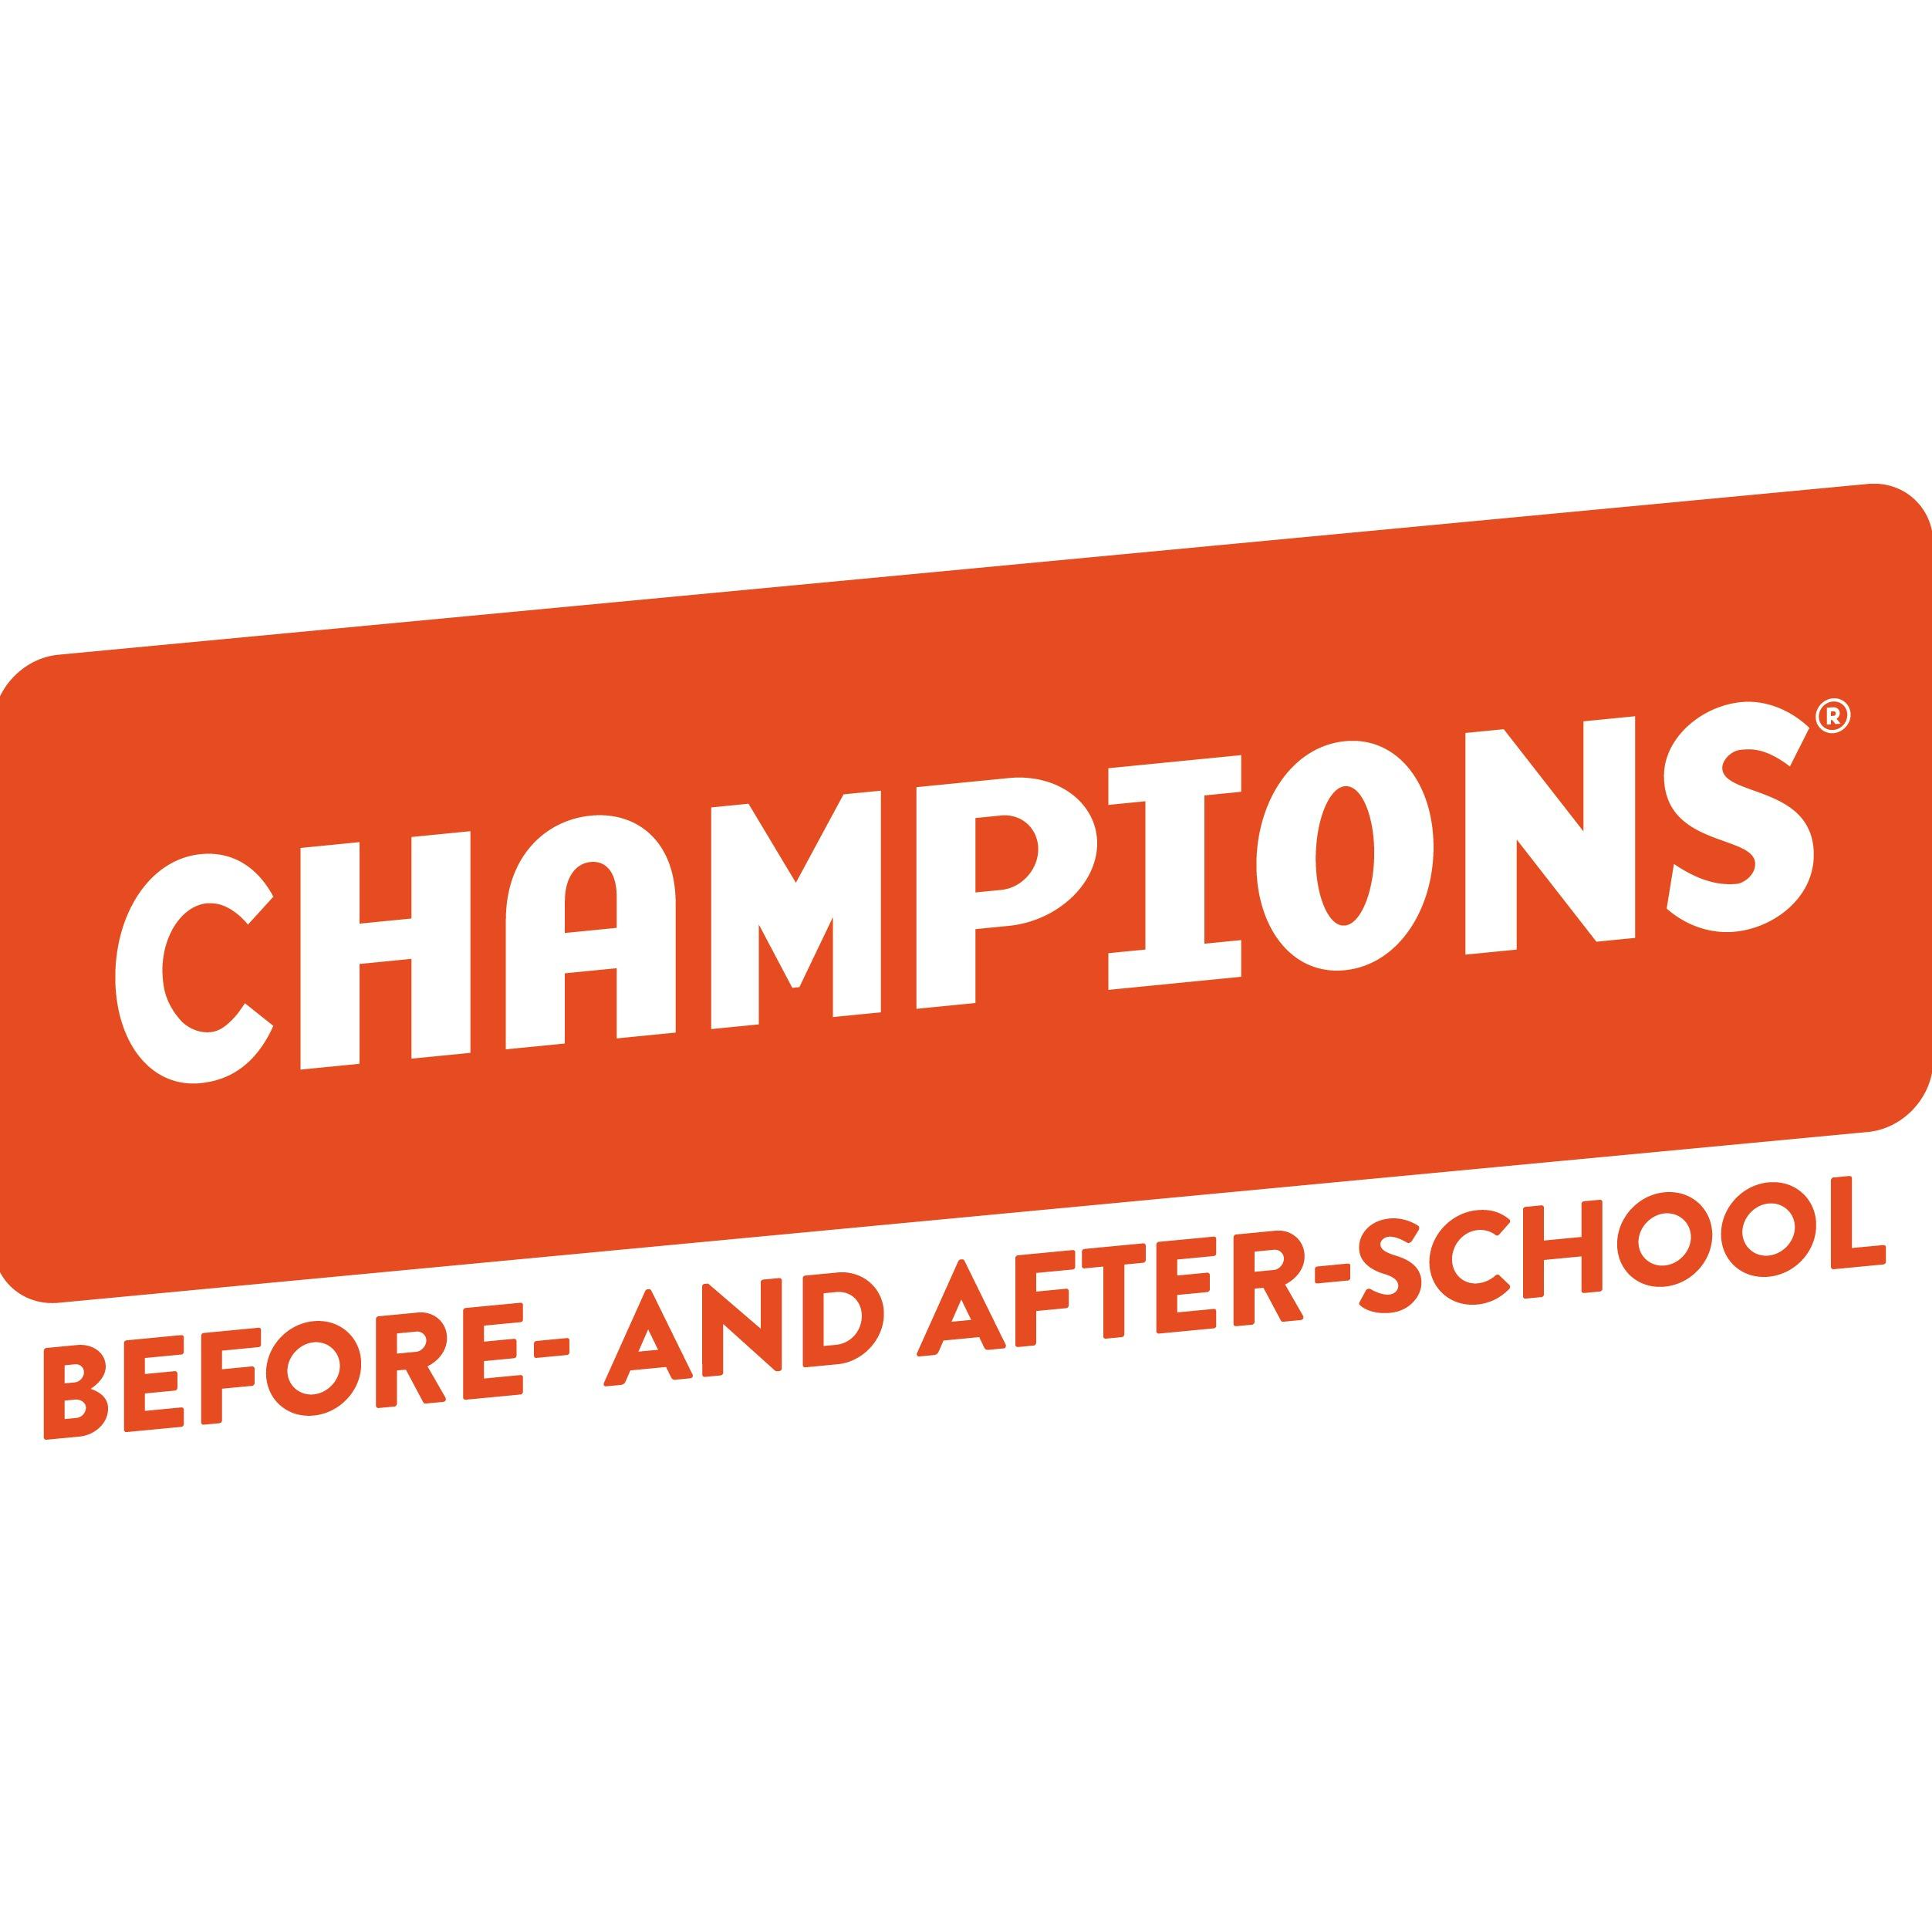 Champions at Midtown Community